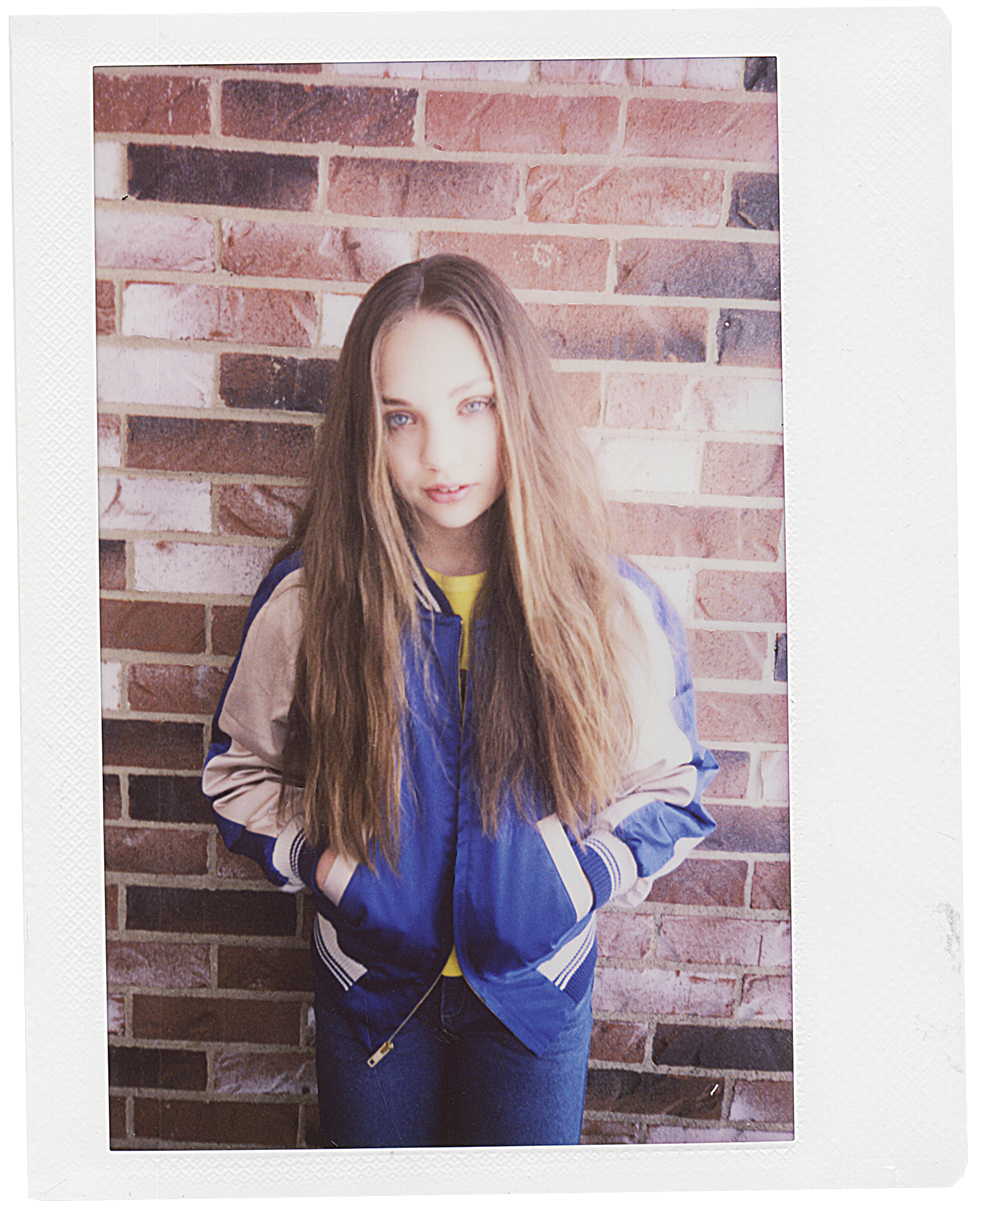 An error occurred. Dance Moms  Star Maddie Ziegler   Peace   Justice